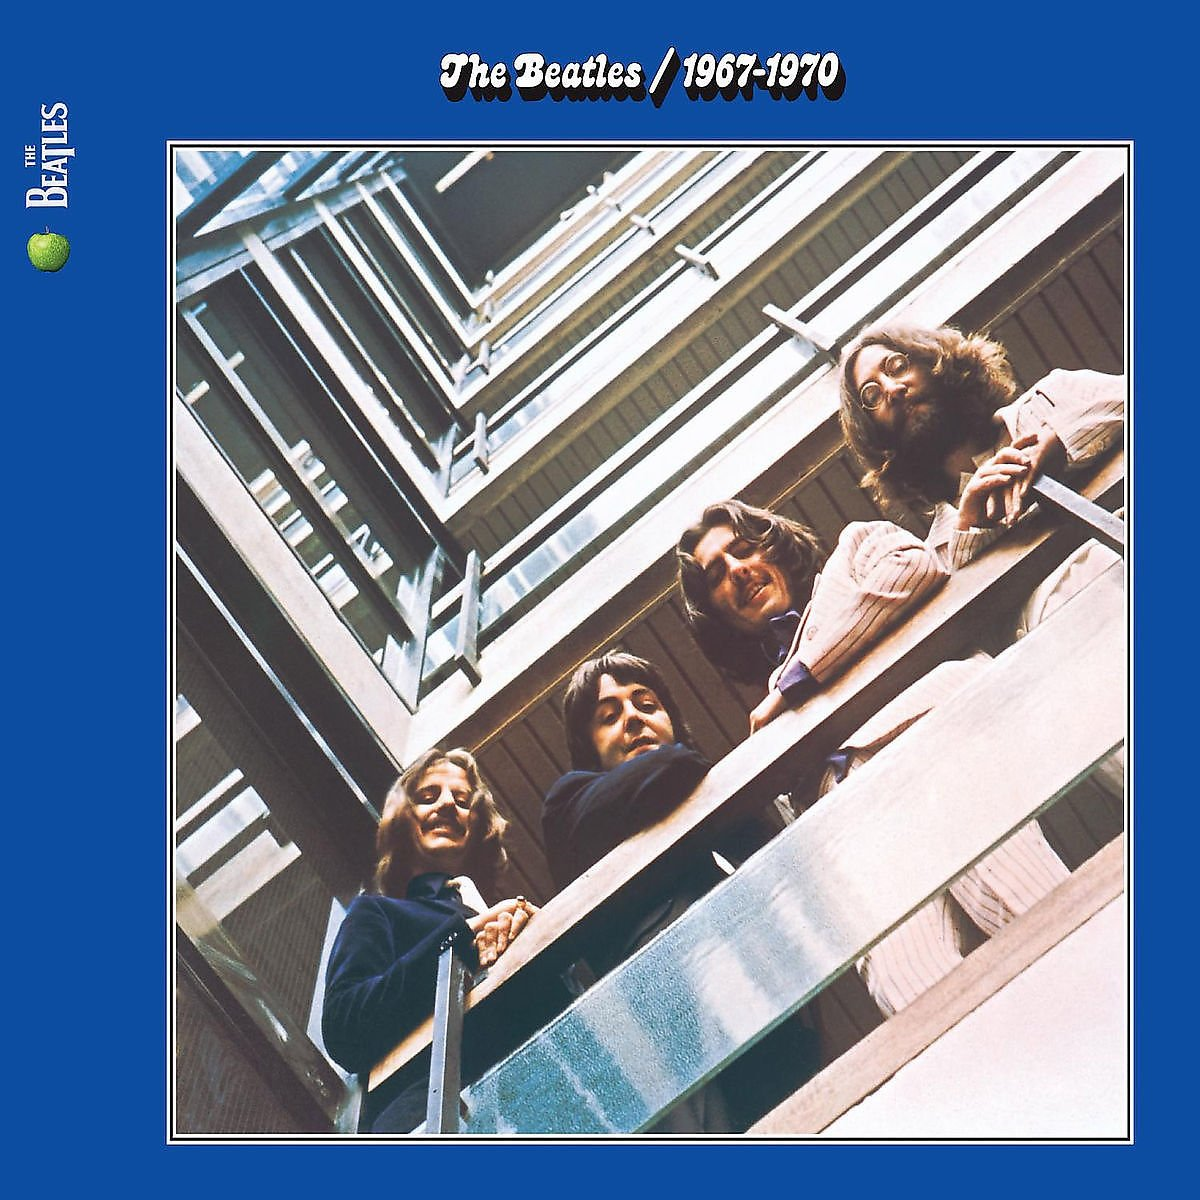 The Beatles: 1967-1970 by Beatles, The